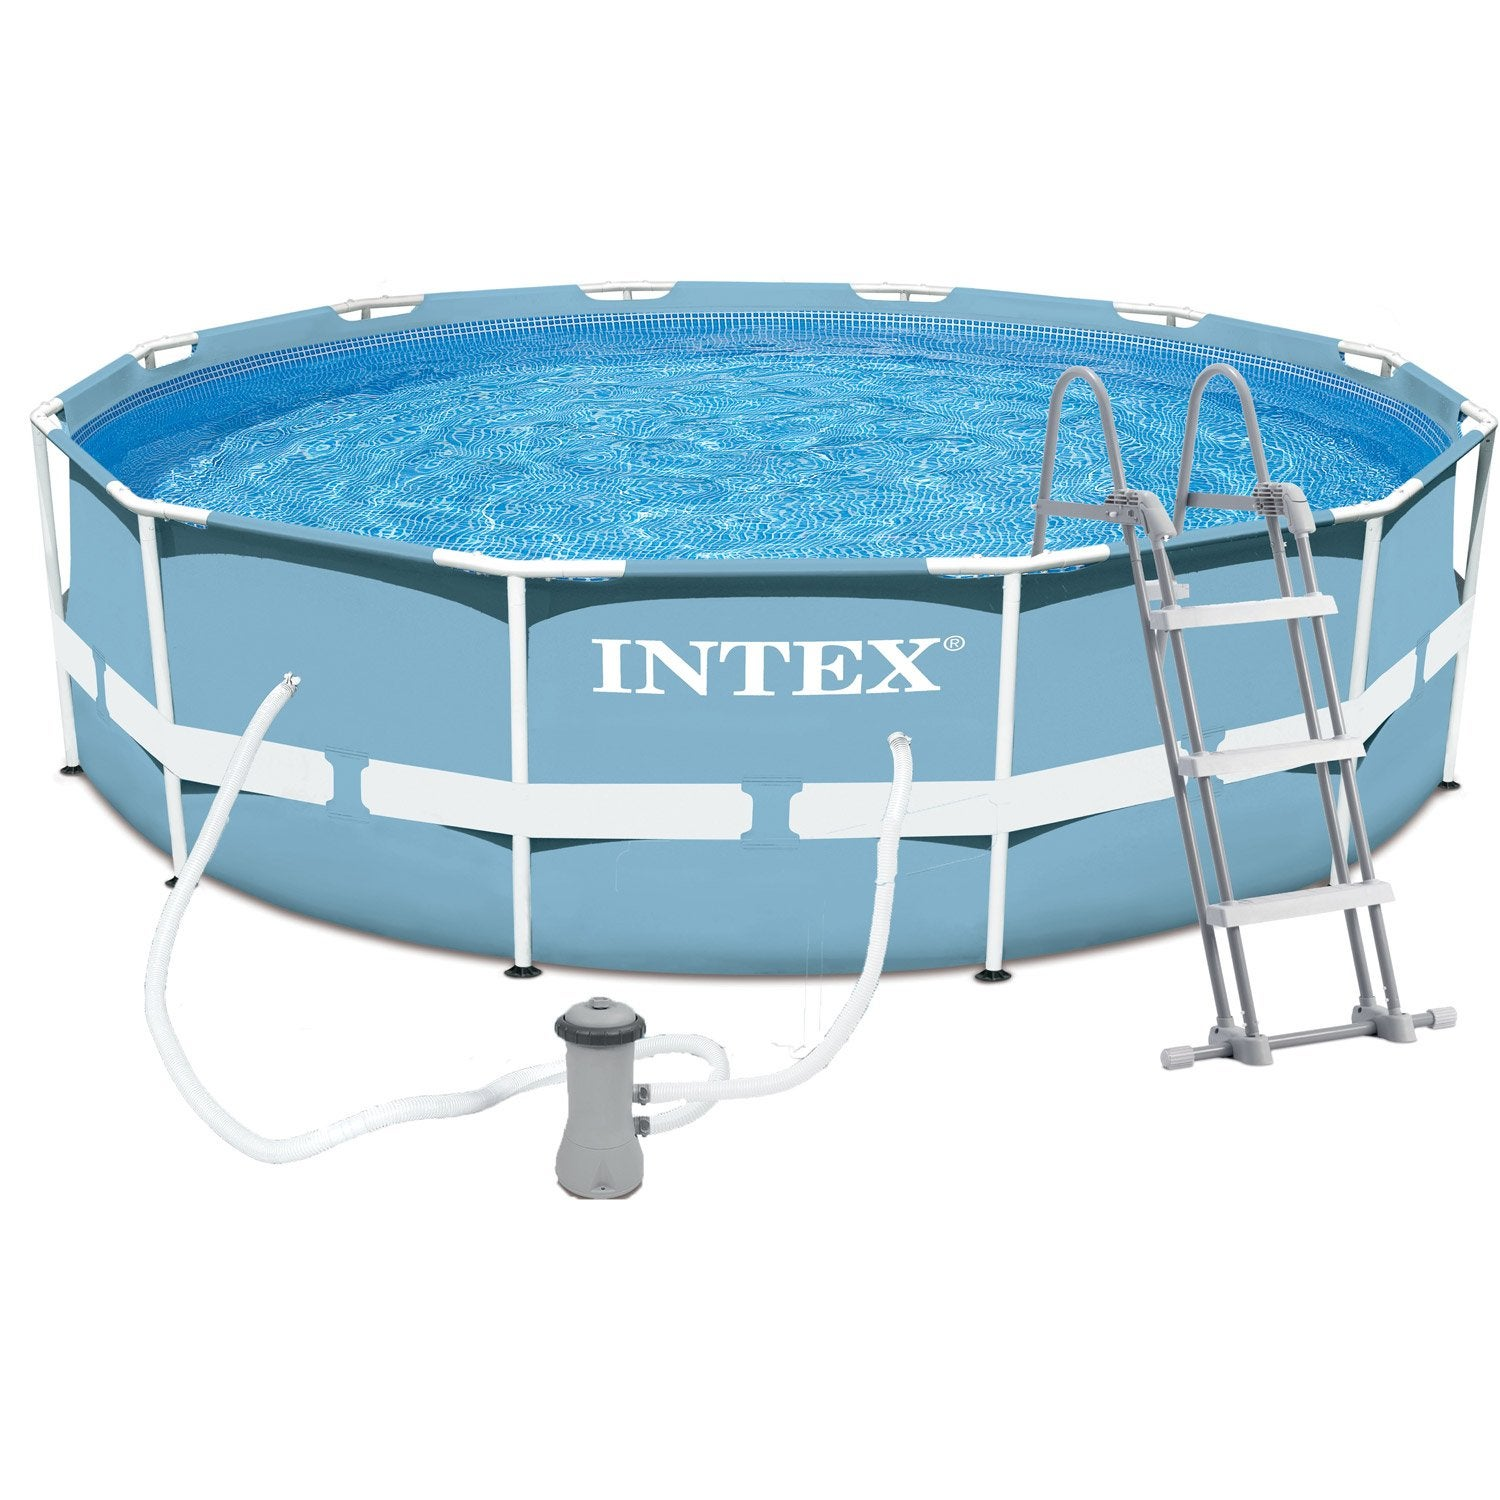 Piscine hors sol autoportante tubulaire prism frame intex for Piscine portable carrefour